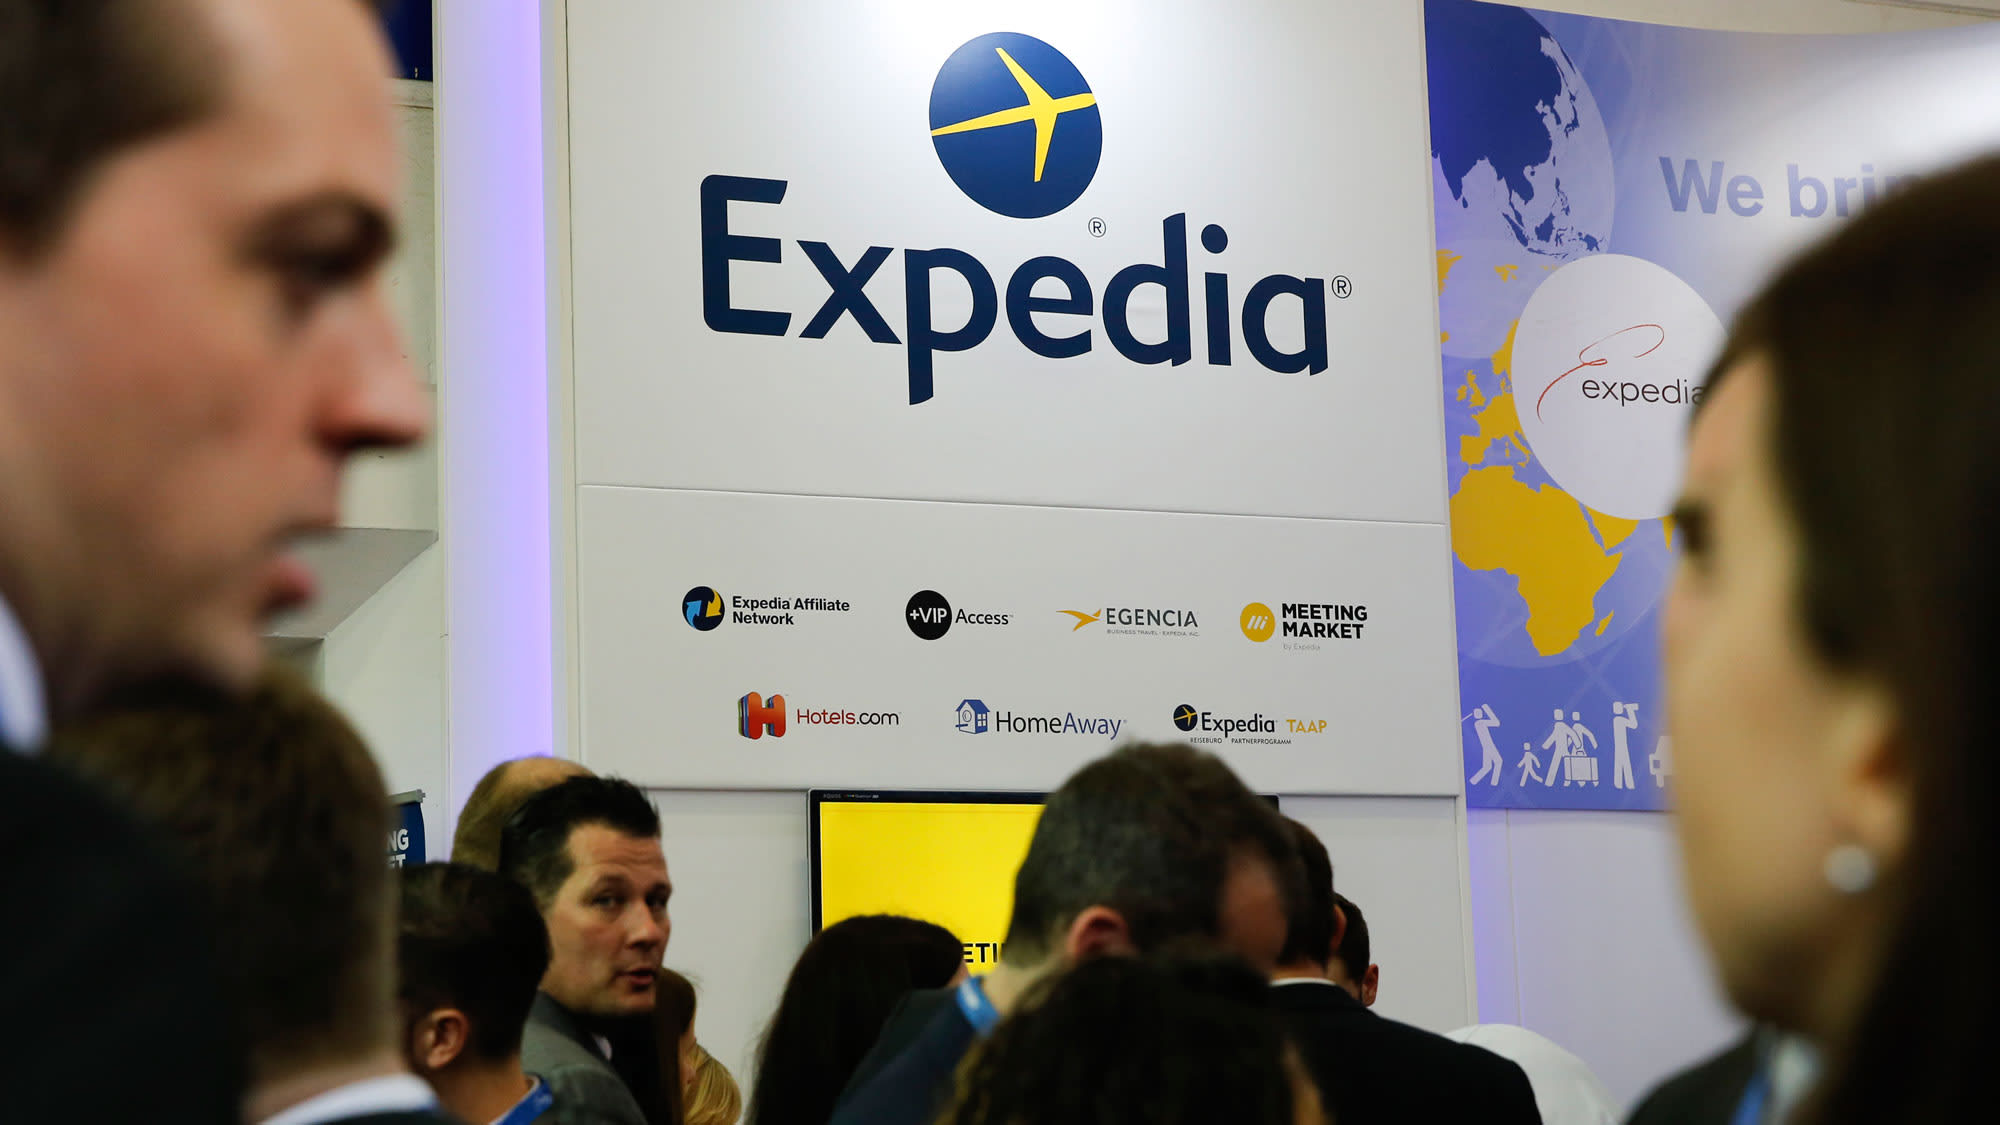 Expedia CEO: Digital services taxes in Europe would end up costing our customers